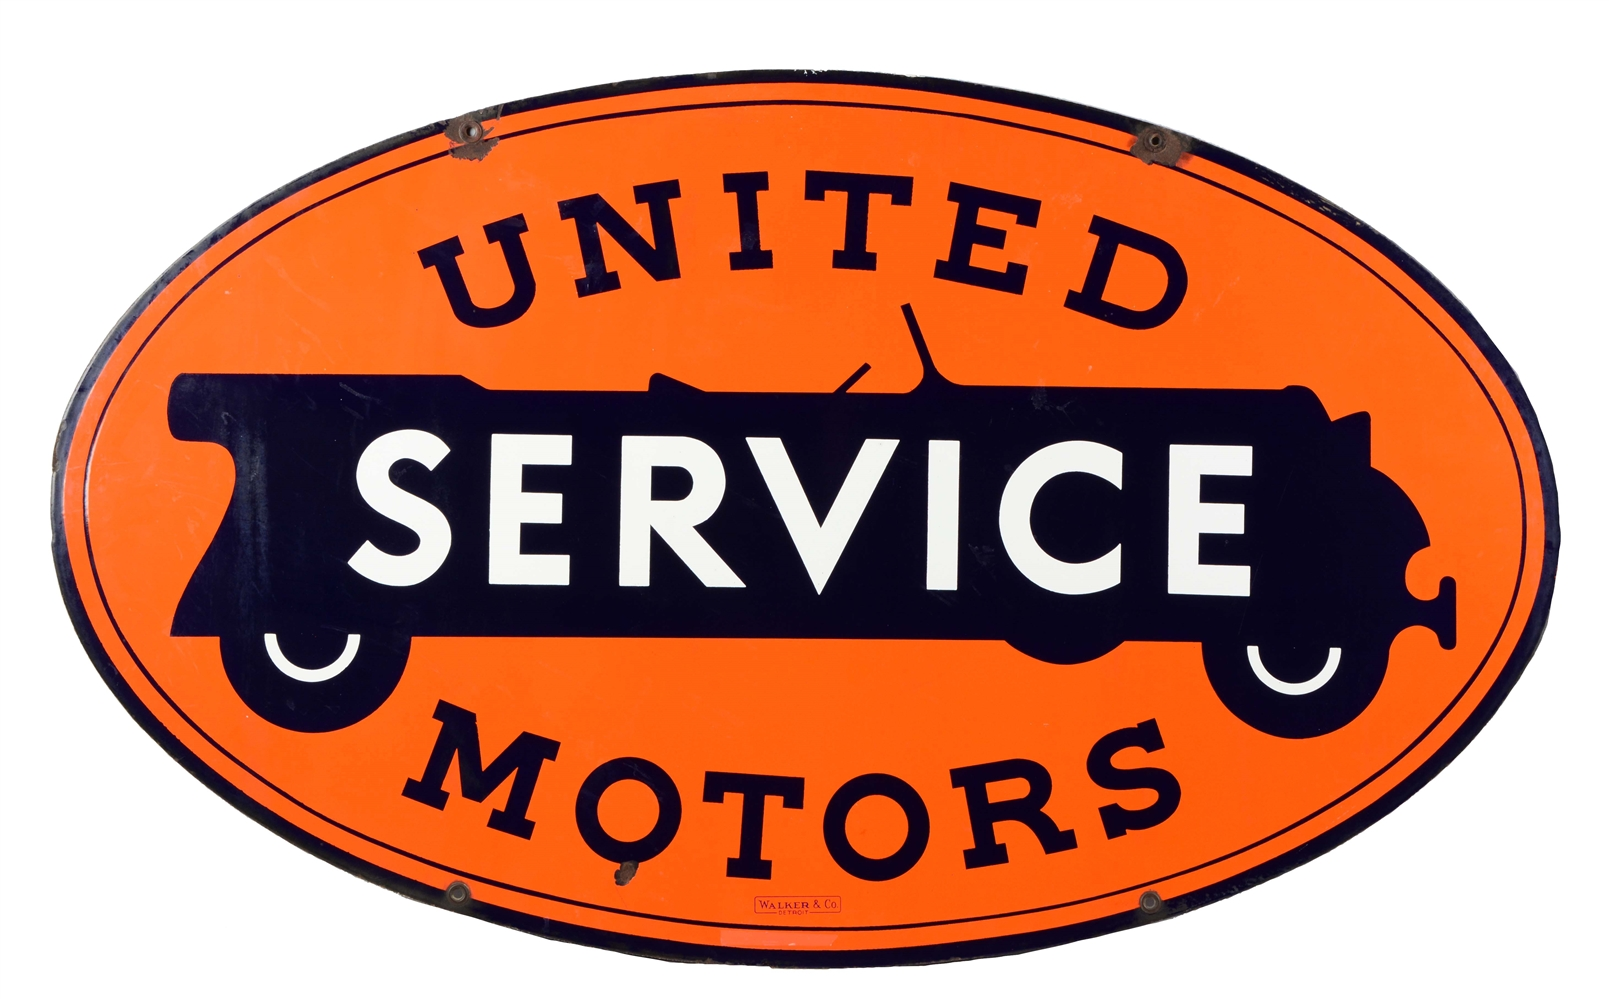 United Motor Service Oval Porcelain Sign.